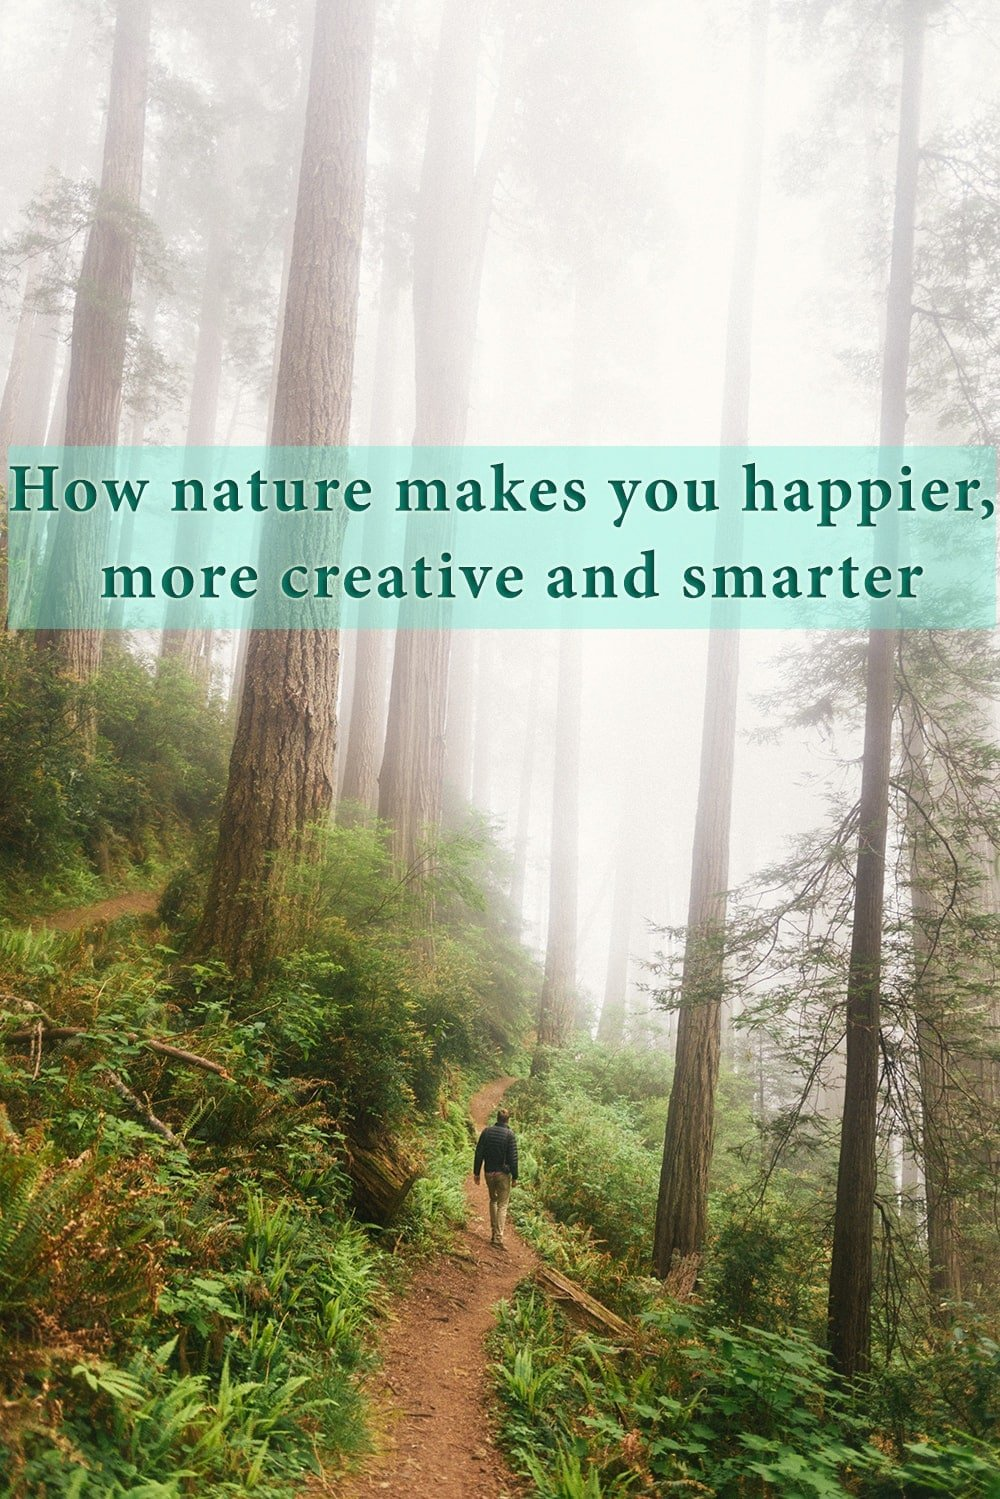 How nature makes you happier